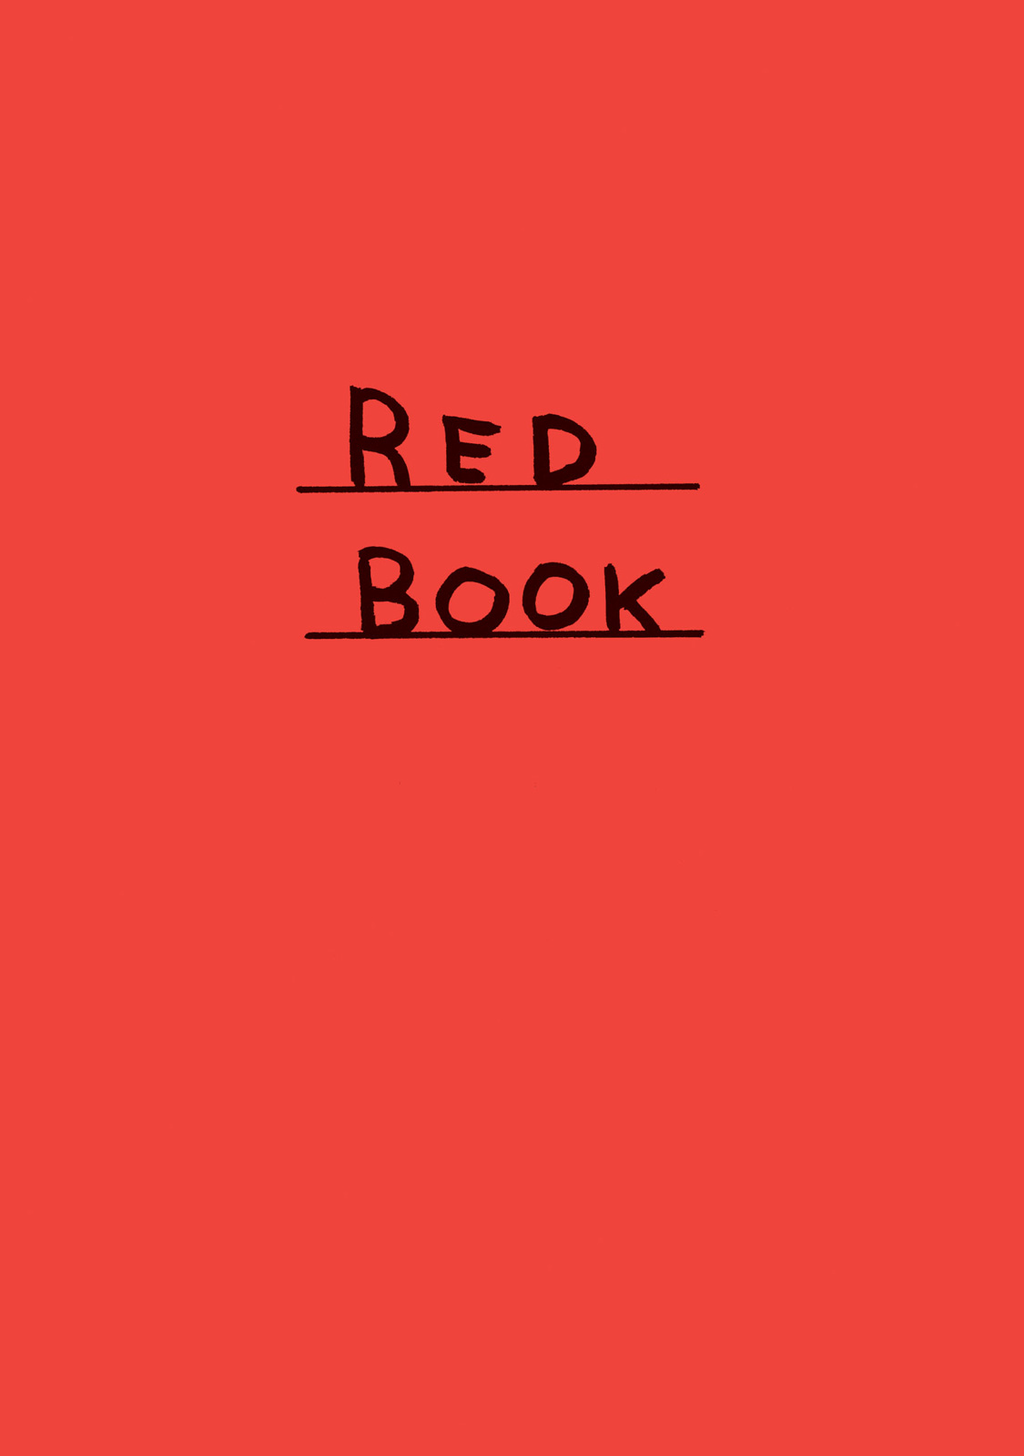 Red Book By: David Shrigley